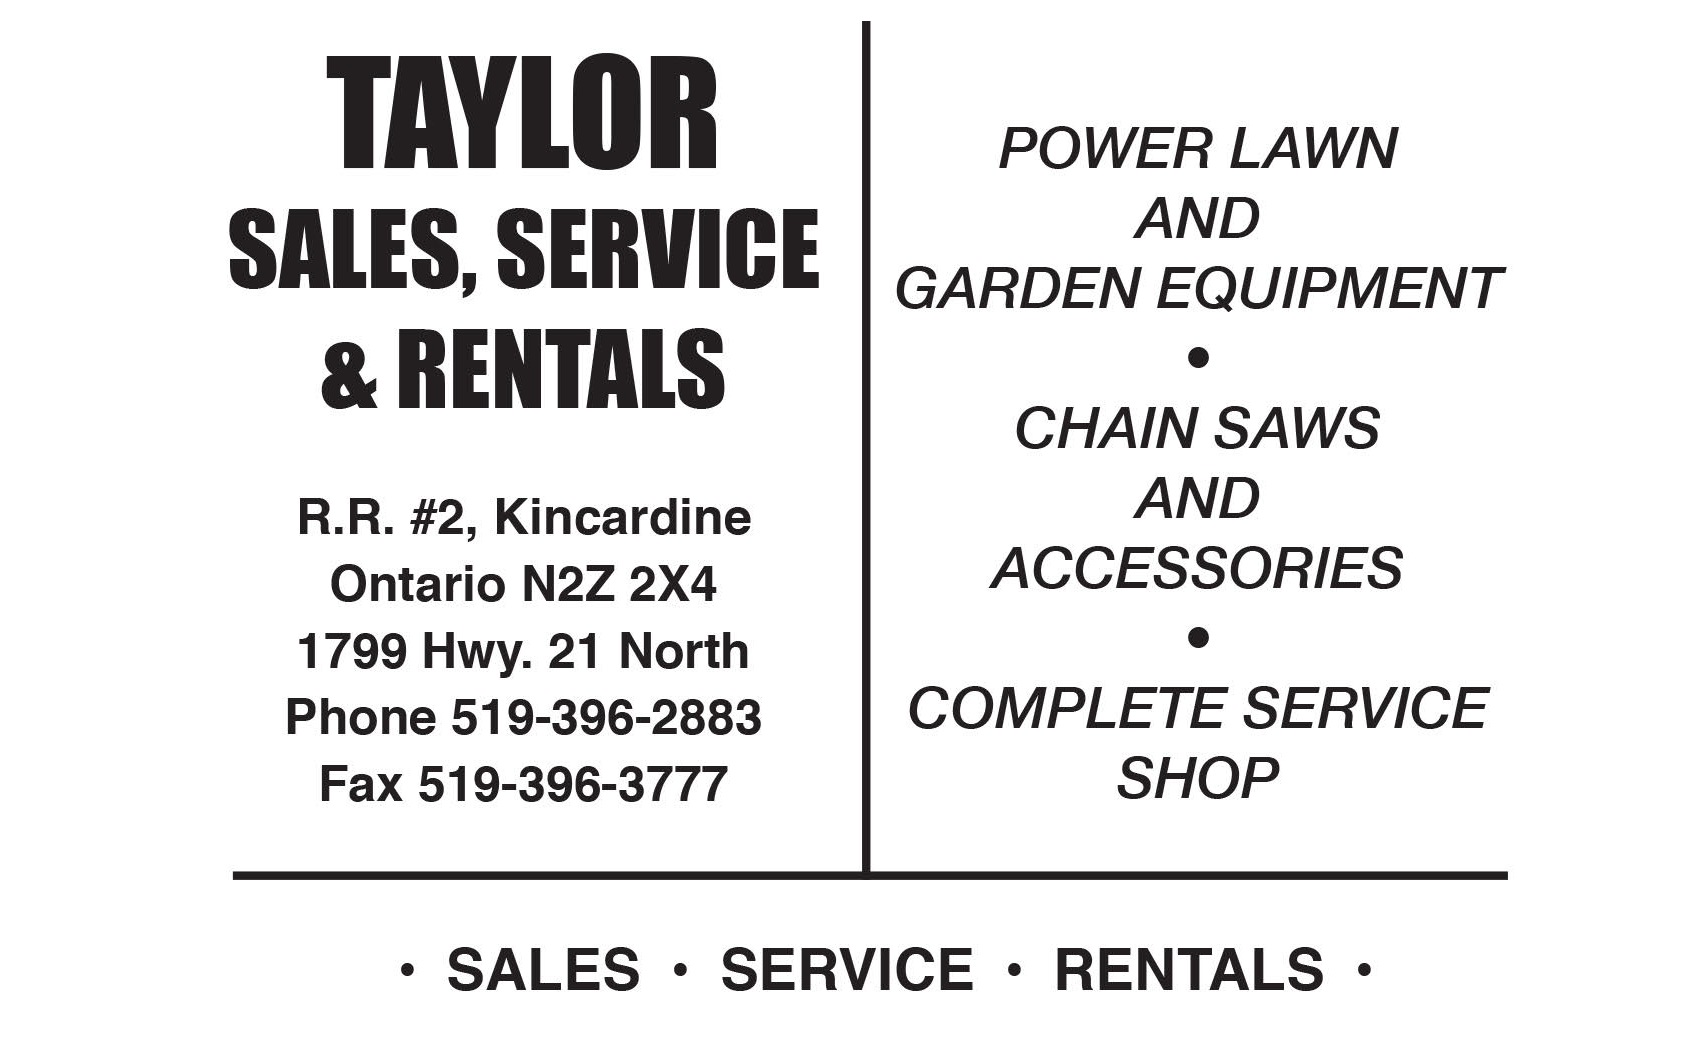 Taylor-sales-and-rentals-iii.png